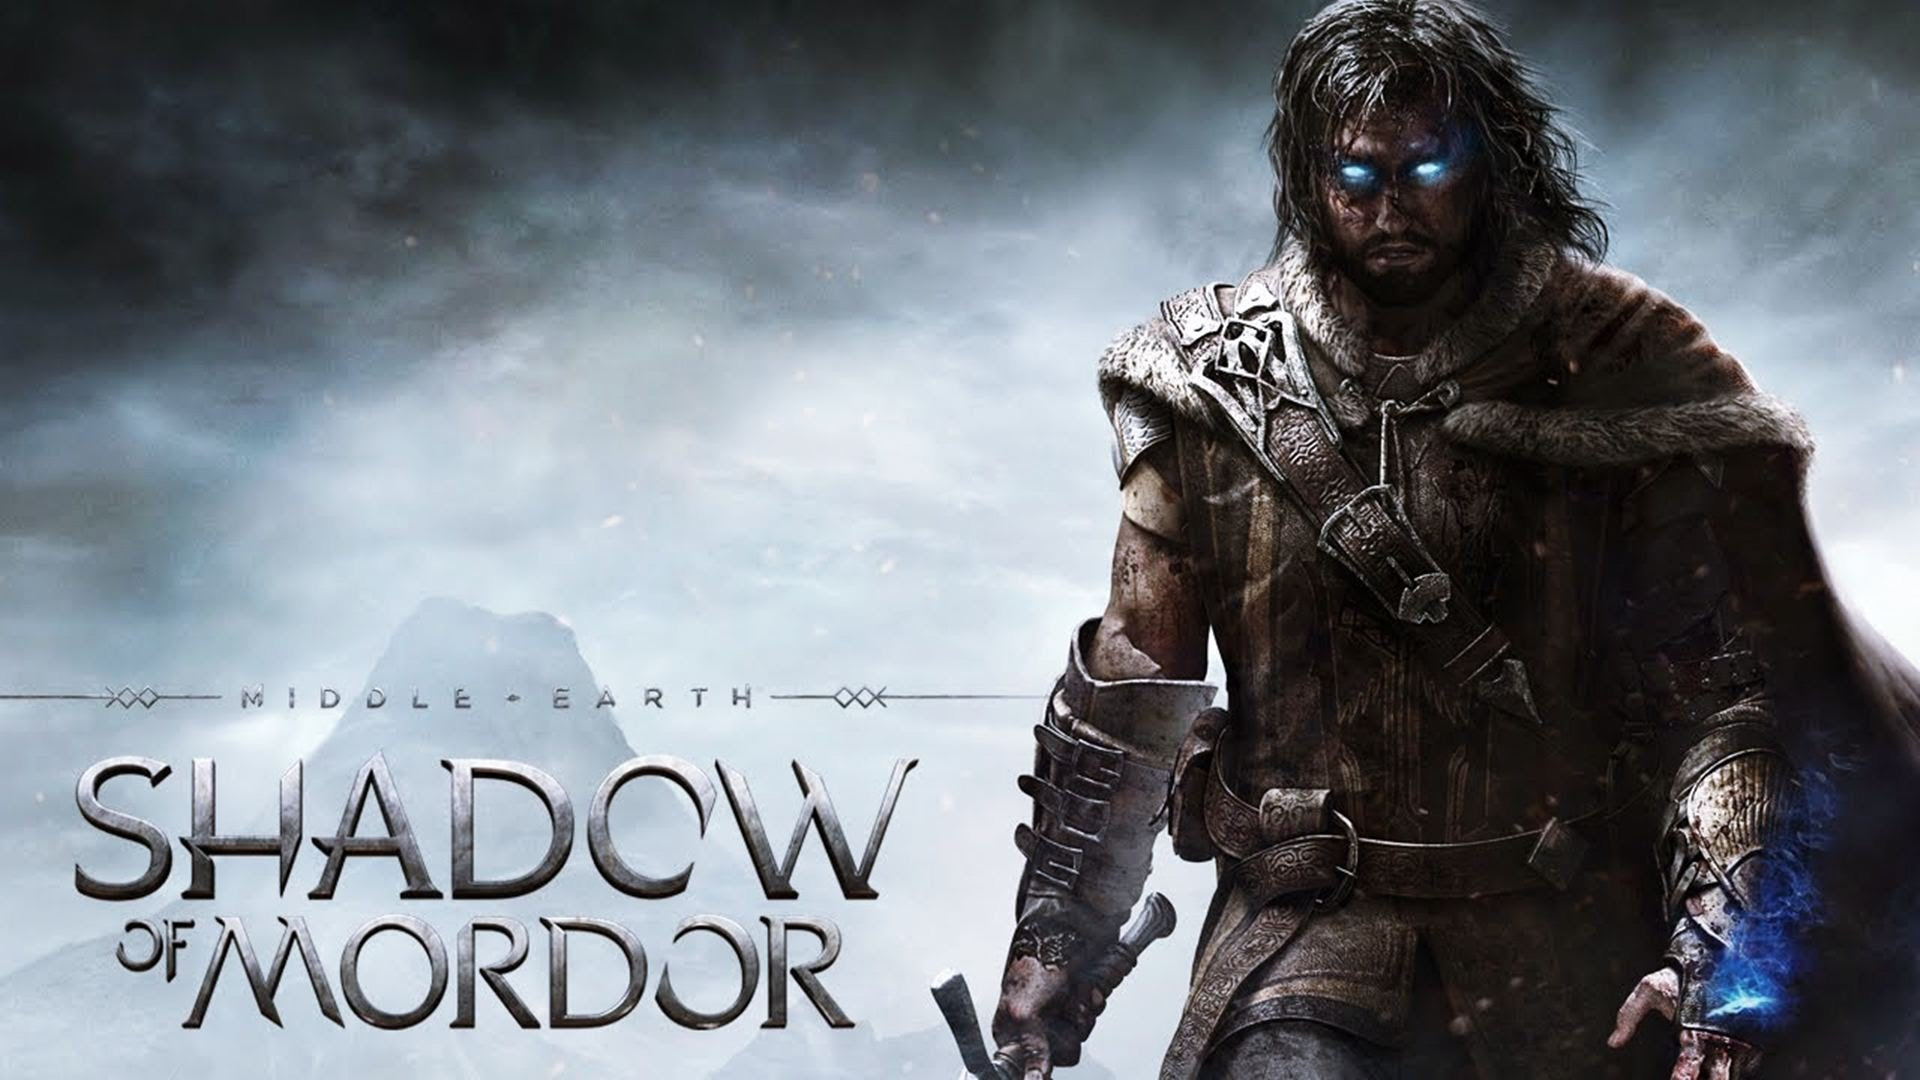 Middle Earth Shadow of Mordor PewDiePie